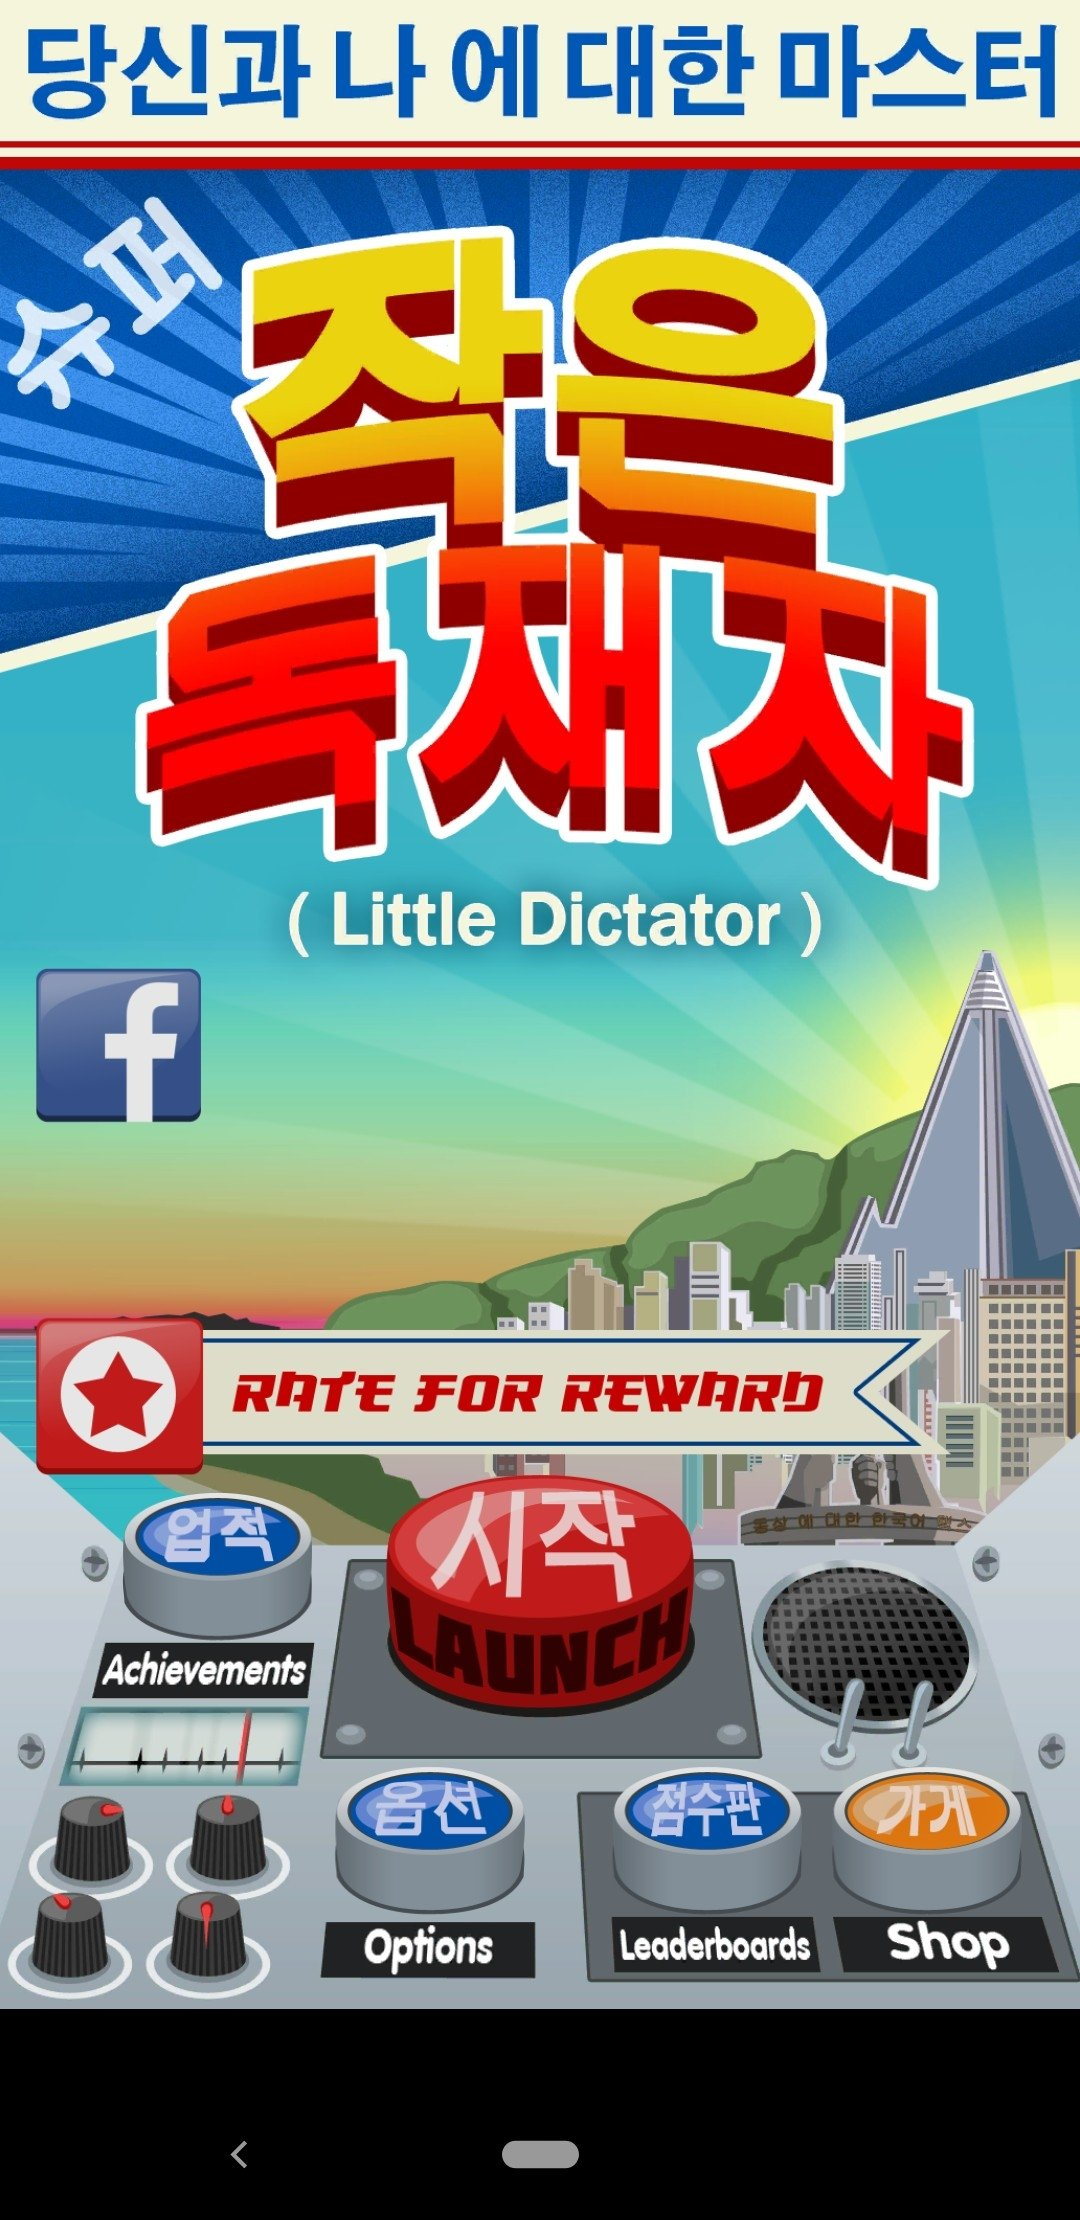 Little Dictator Android image 5